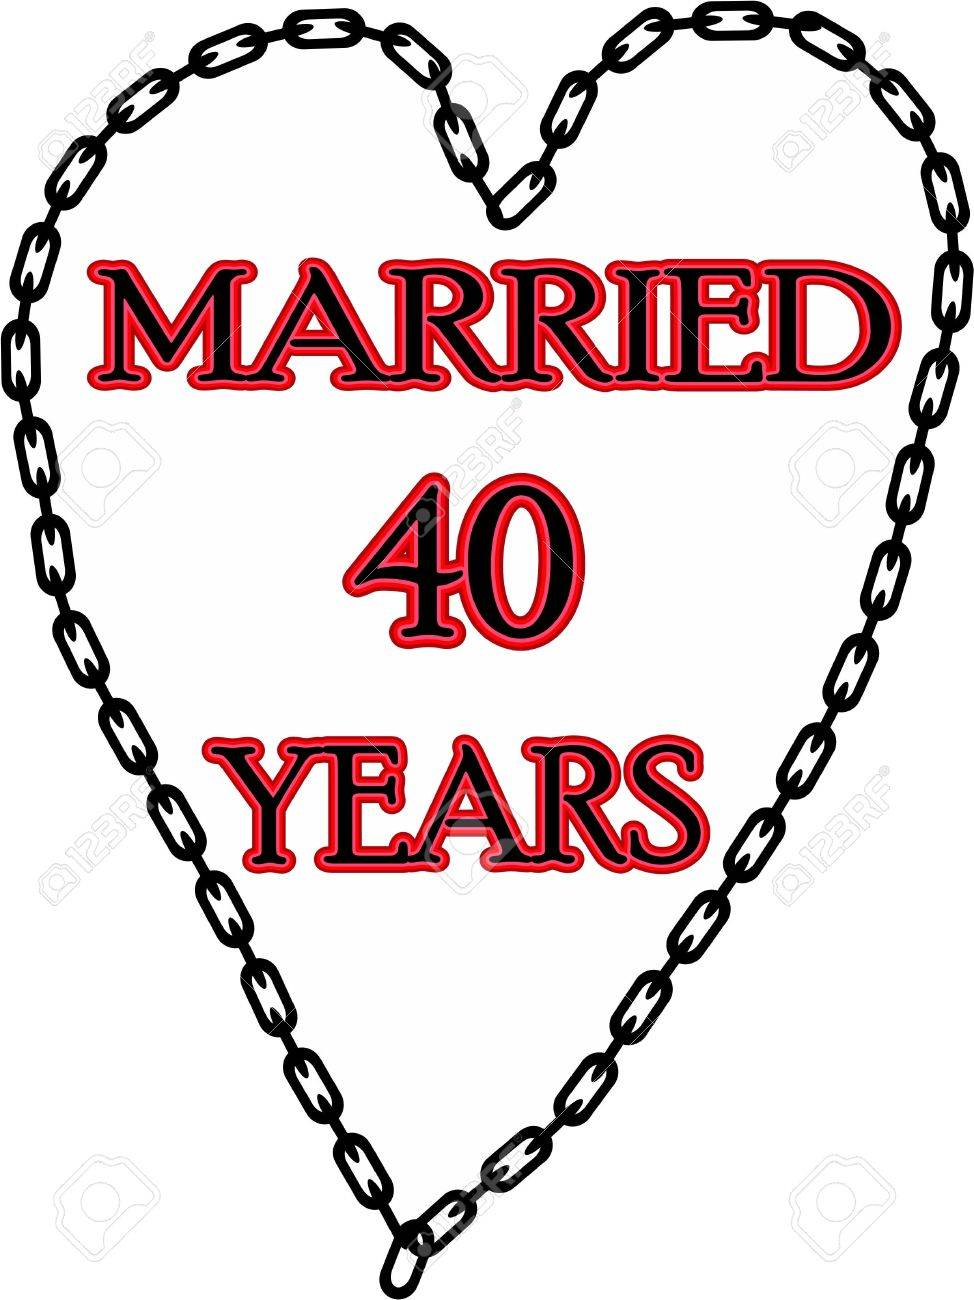 Humoristic marriage / wedding anniversary chained for 40